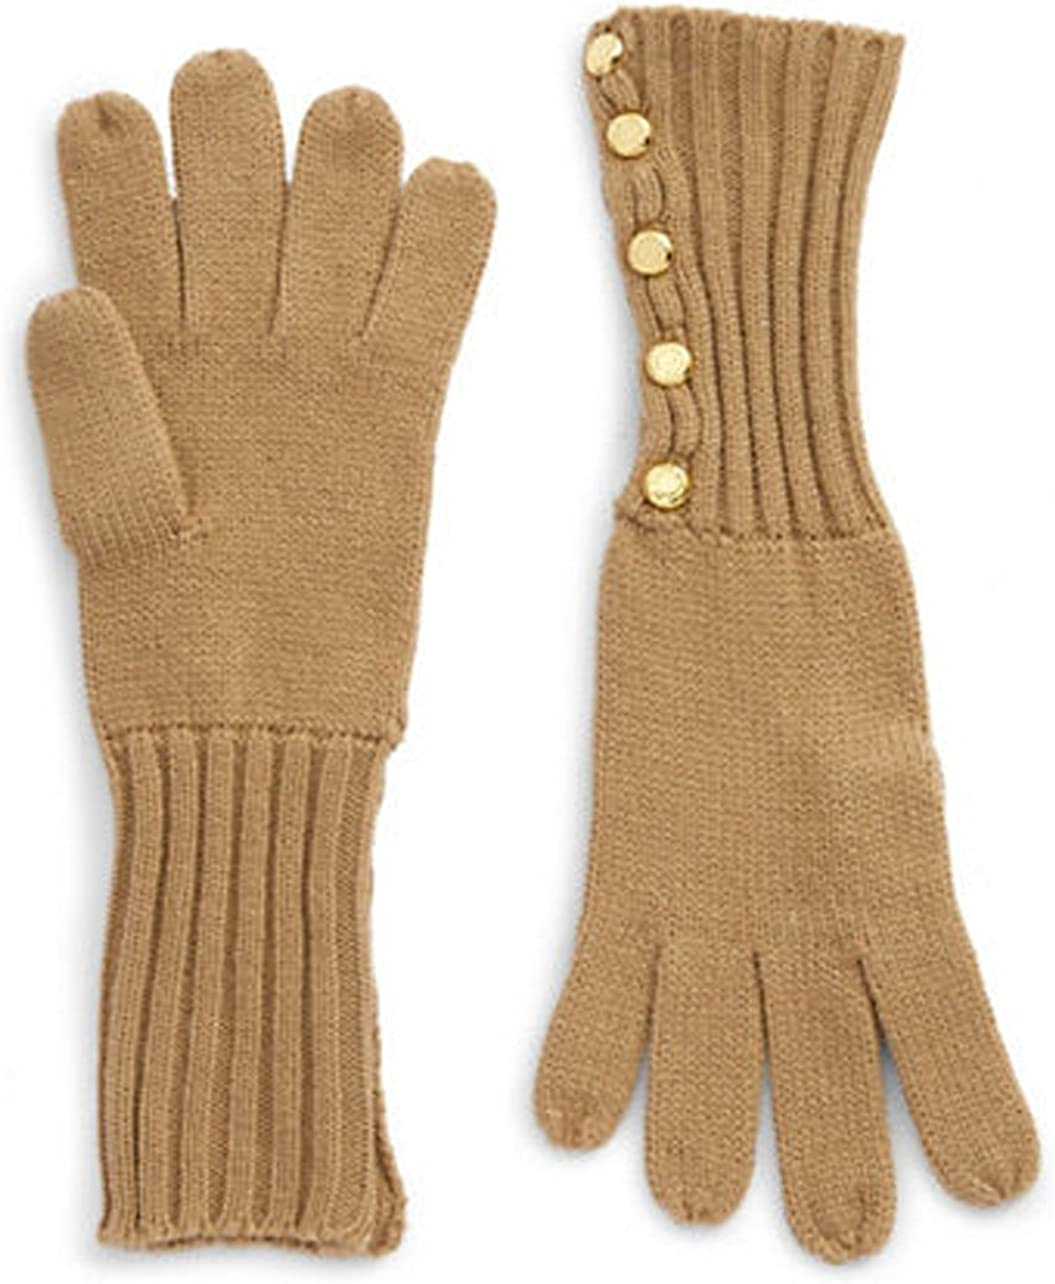 Michael Kors Women' Knit Gloves With Buttons, Camel, One Size